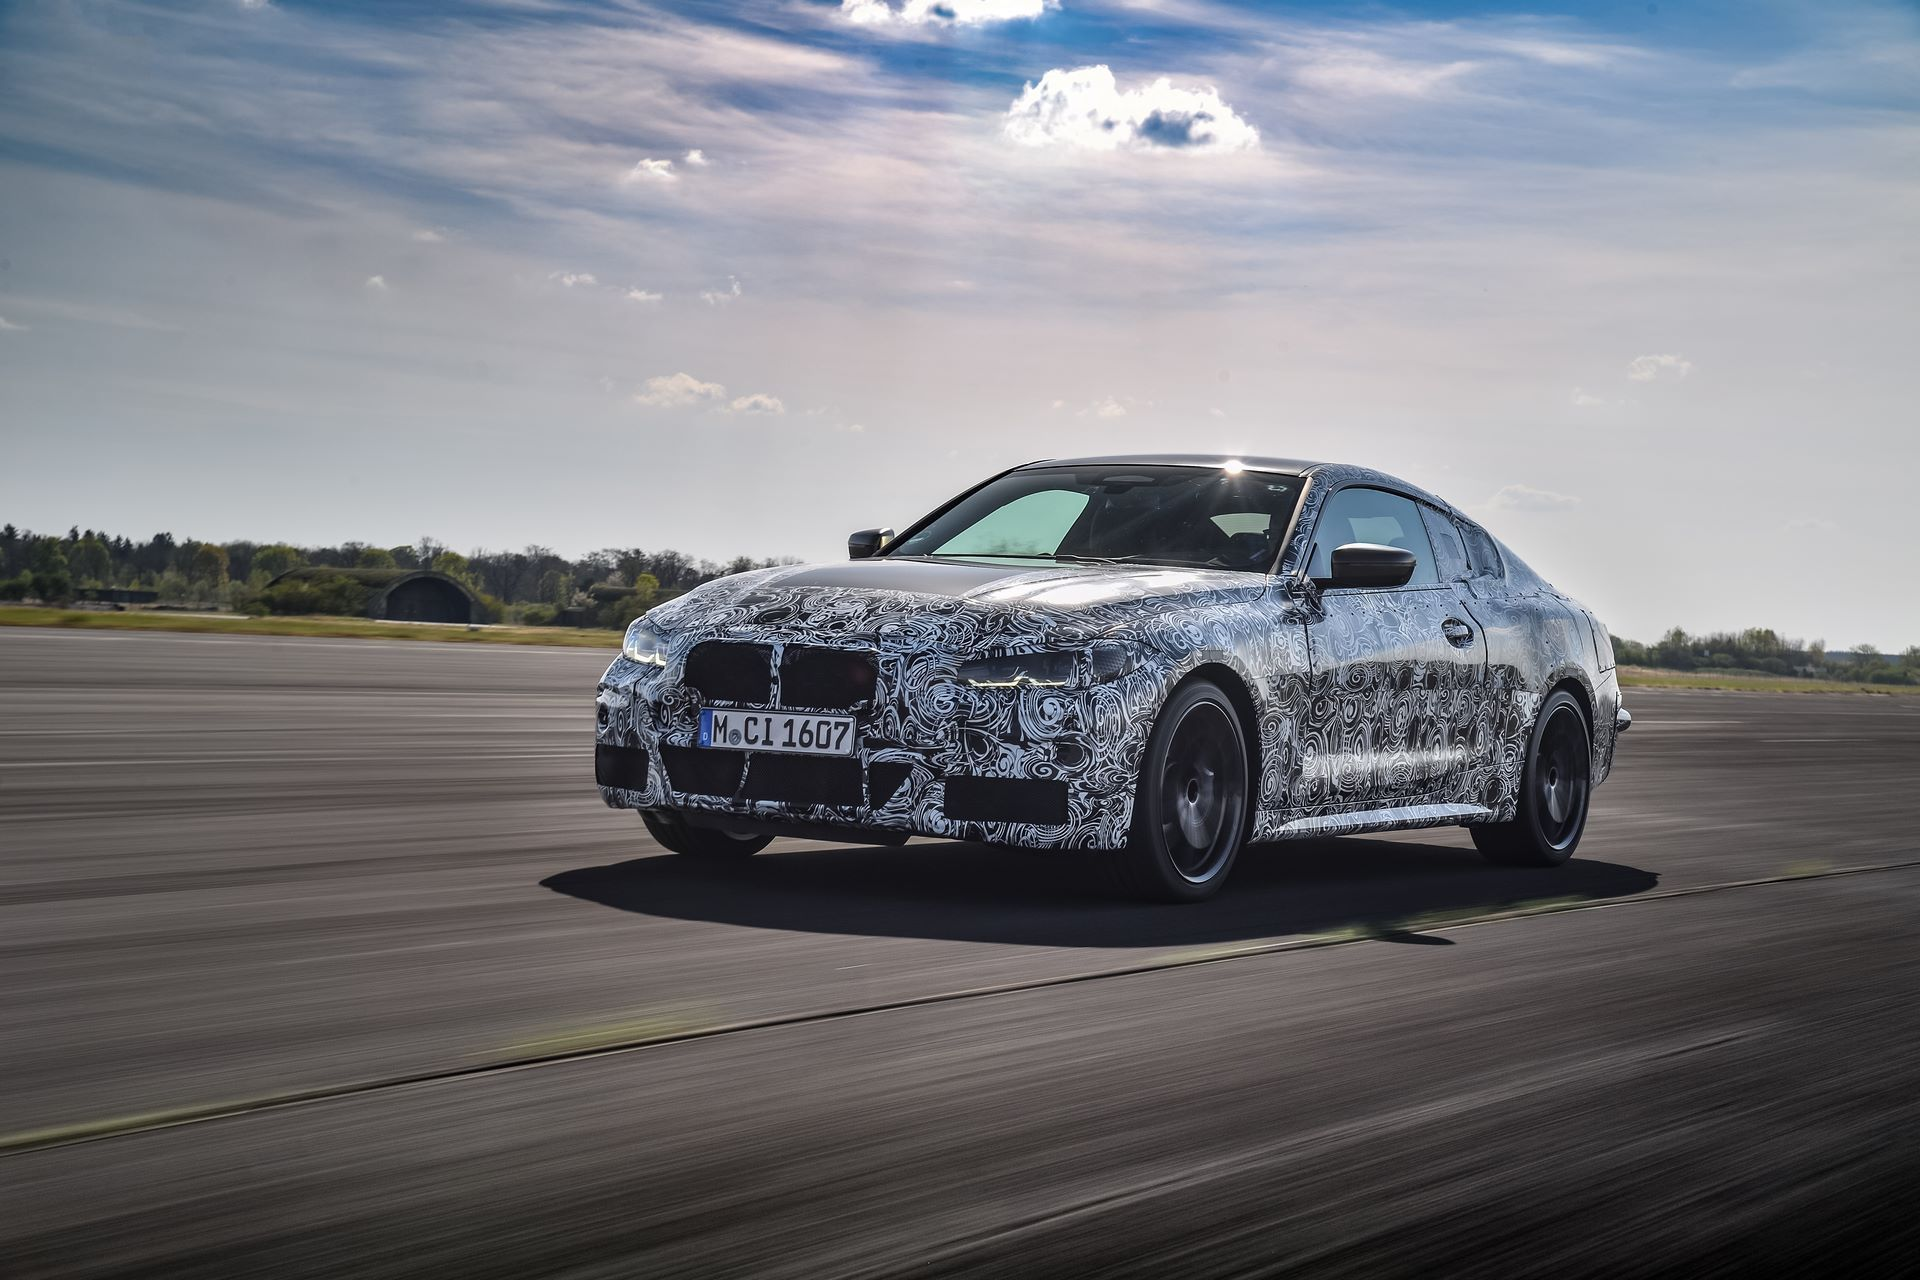 BMW-4-Series-M440i-camouflaged-10